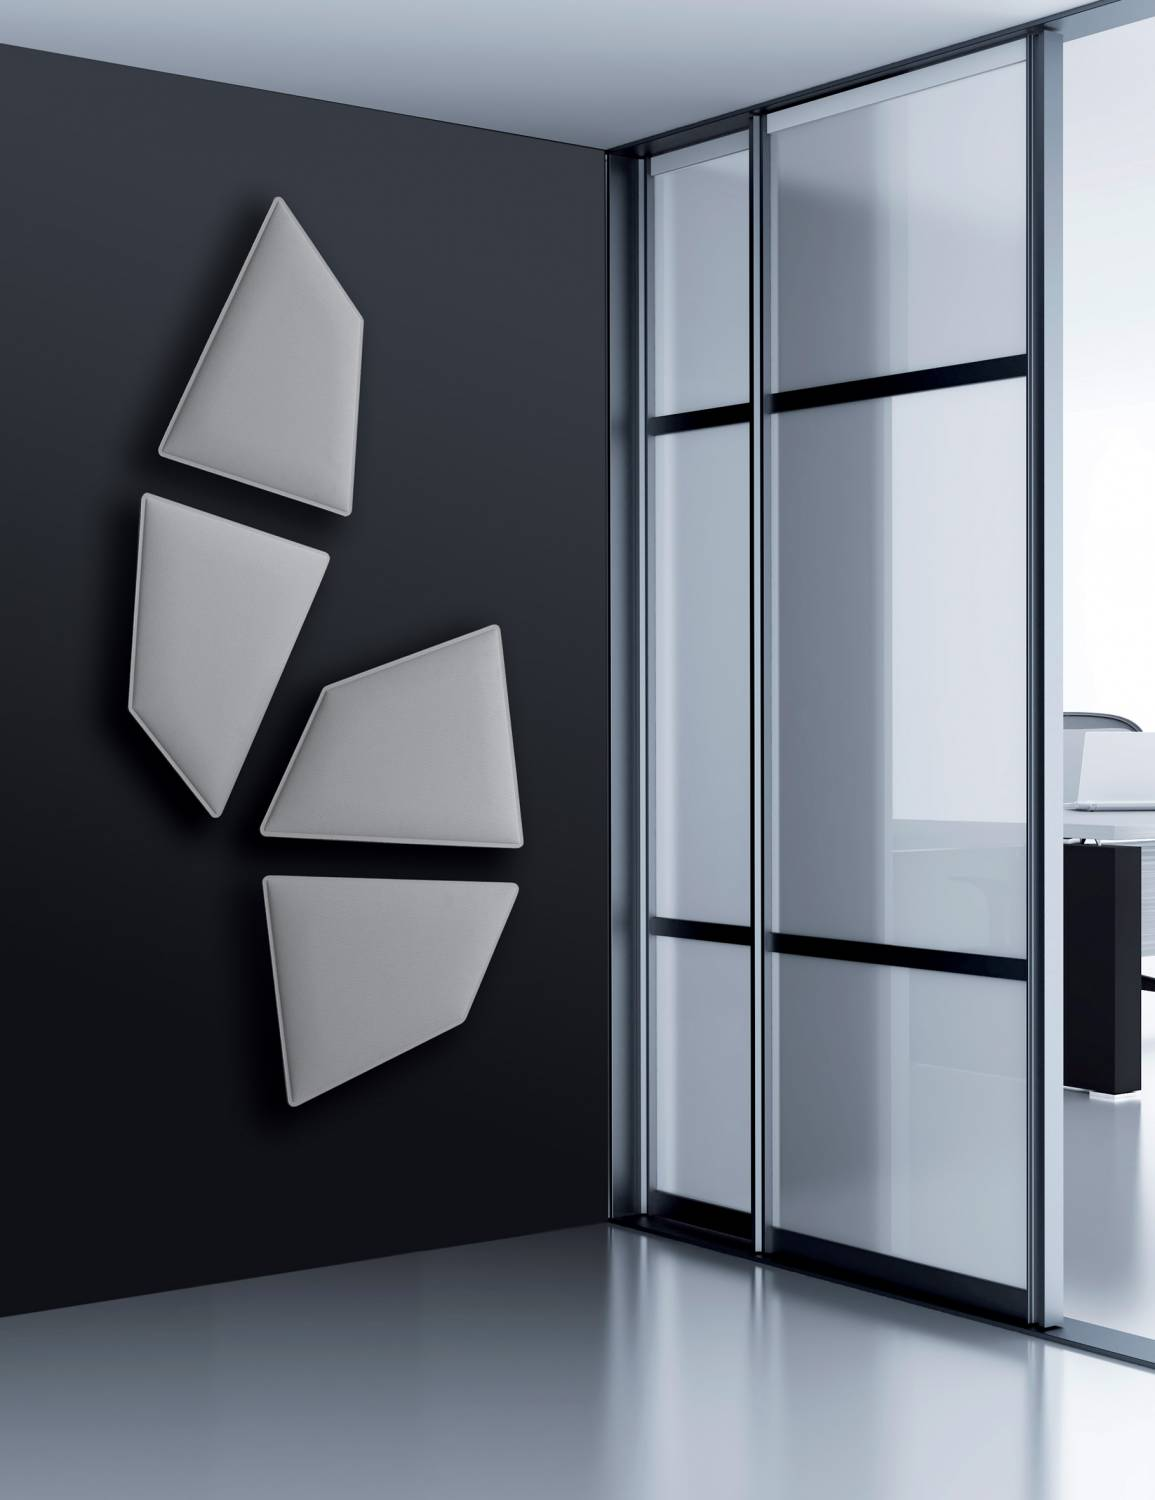 Flap-White-Modern-Wall-Mounted-Acoustic-Panels